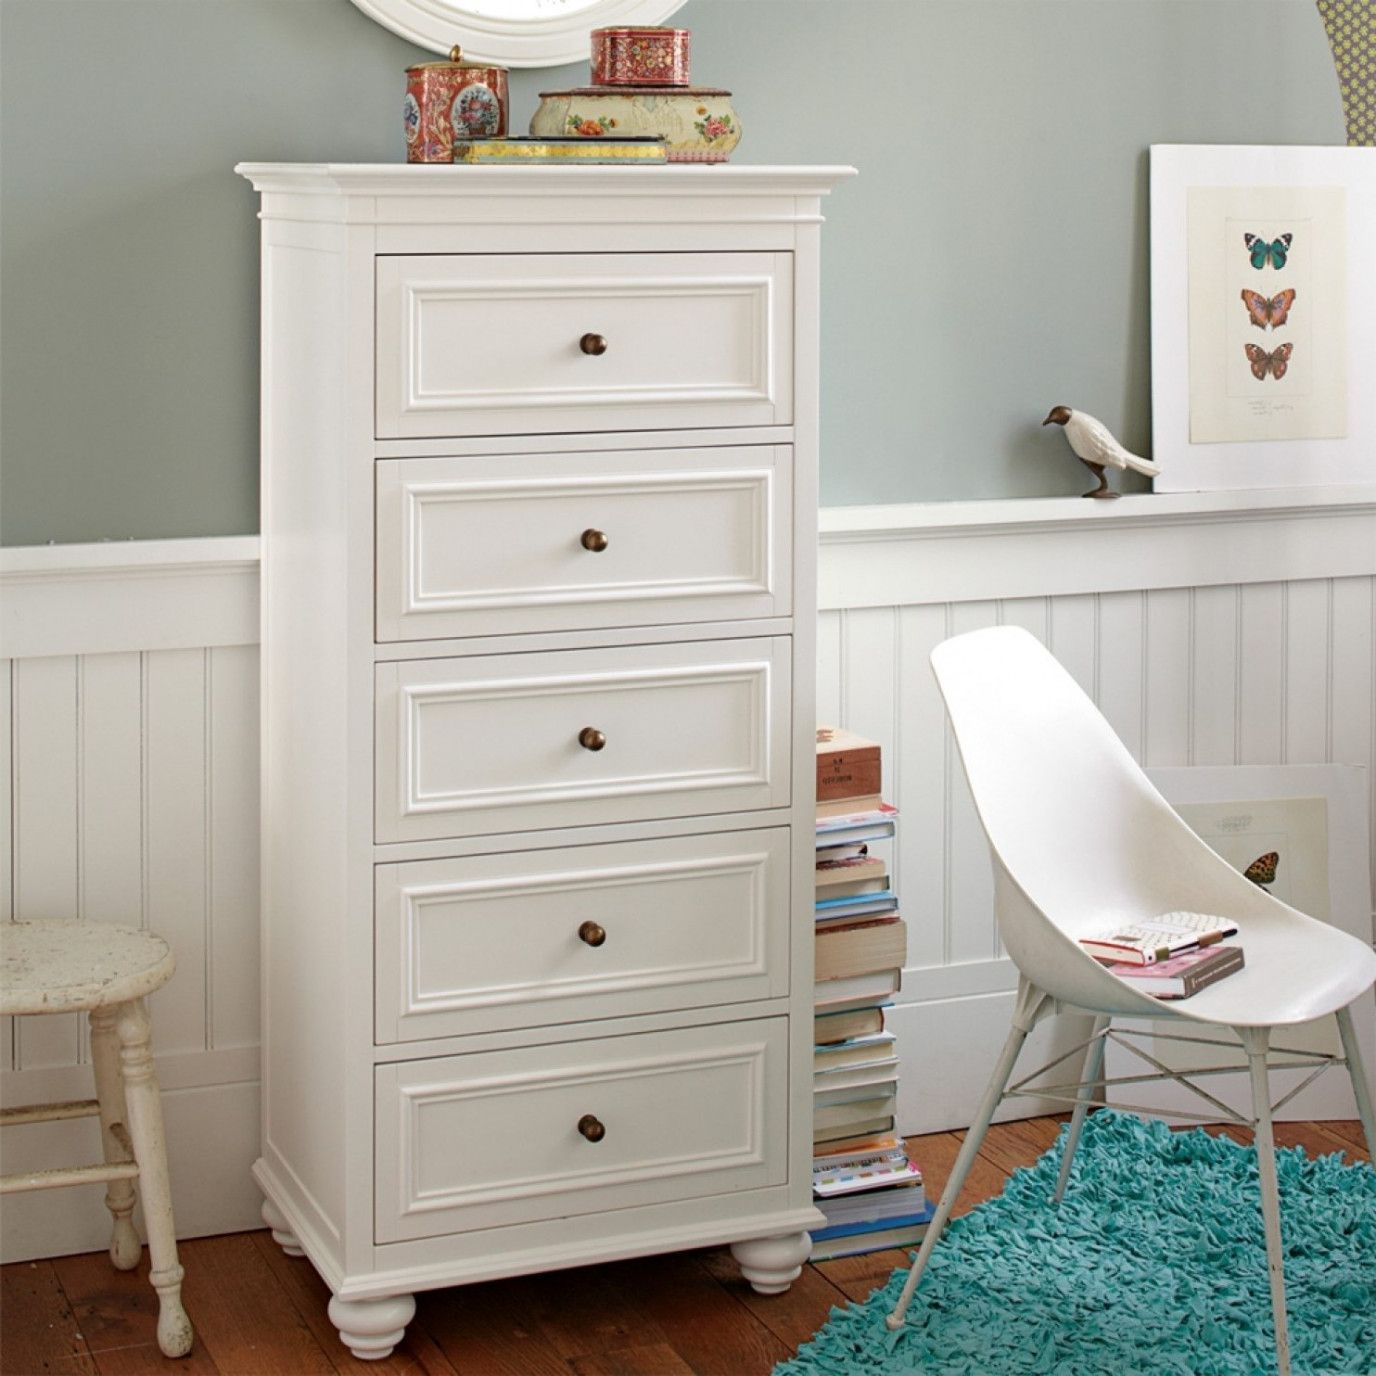 Best 78 Narrow Dressers For Small Spaces Interior Design For 400 x 300